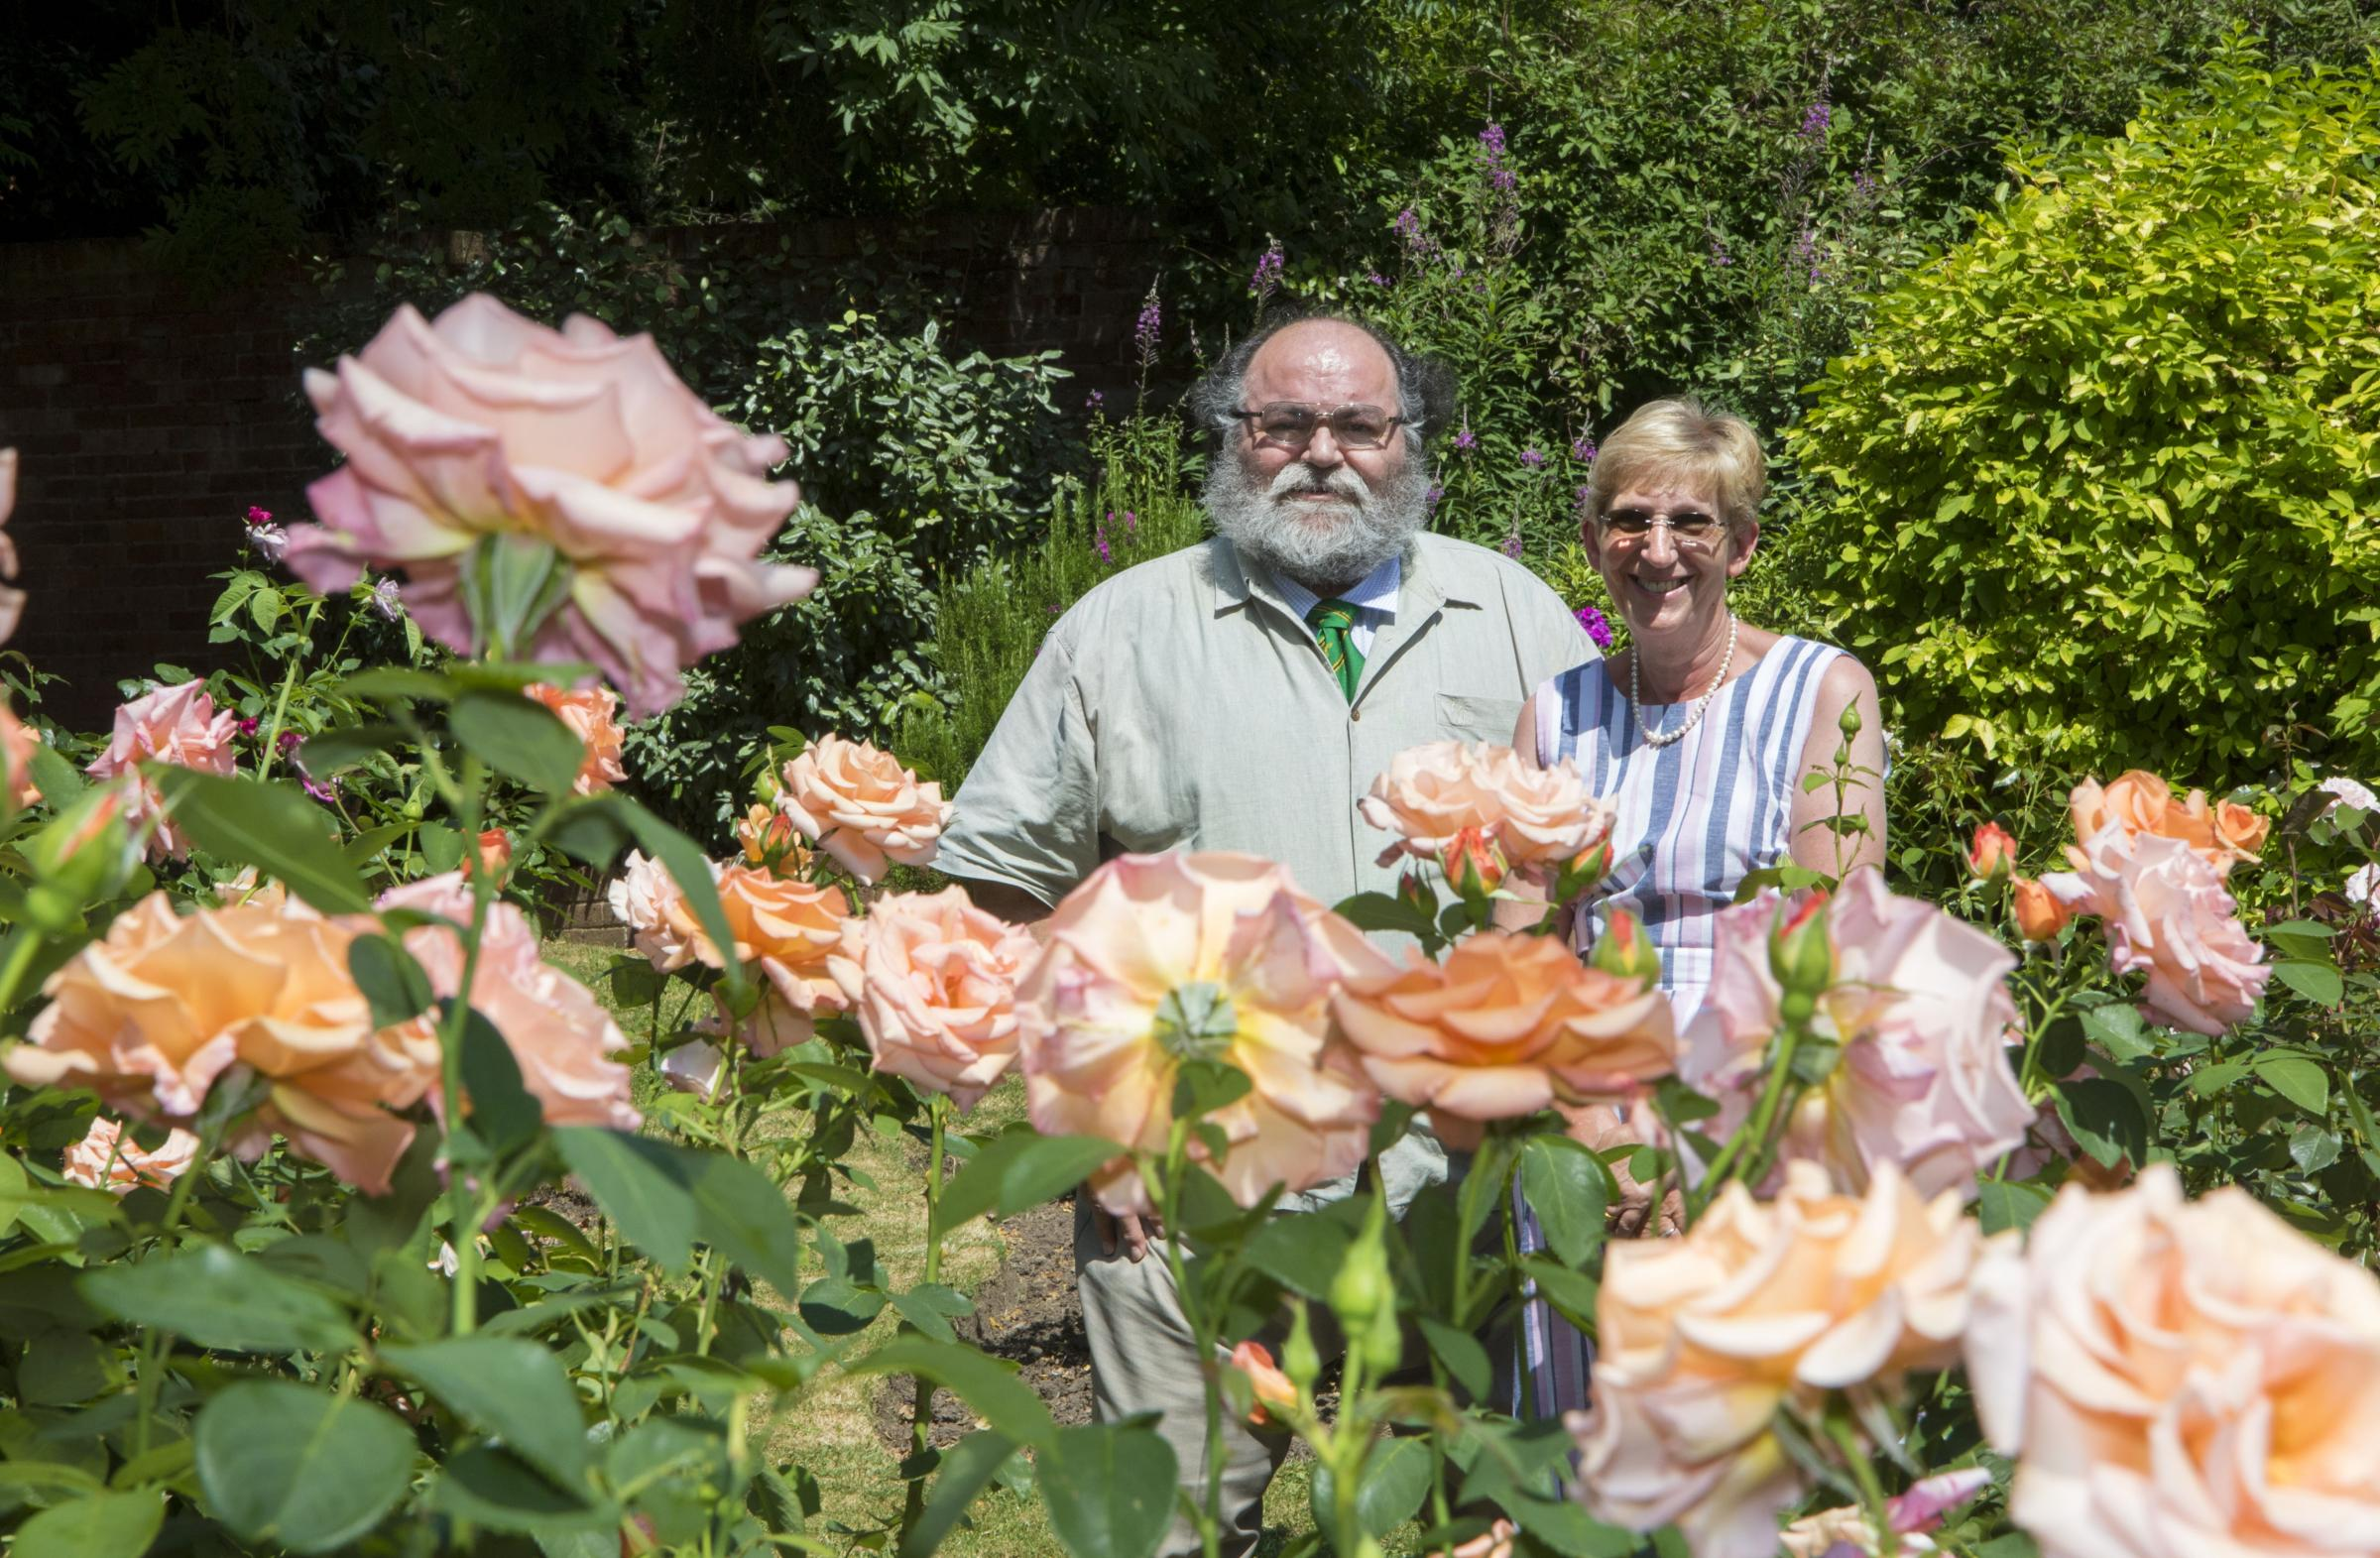 WN_180717_10 Paul Jackson 18.07.17 Ledbury - Clive Green, chairman Ledbury in Bloom and Christina Vass, vice chairman Ledbury in Bloom, with the rose garden in The Walled Garden which was praised during Heart of England in Bloom judging..